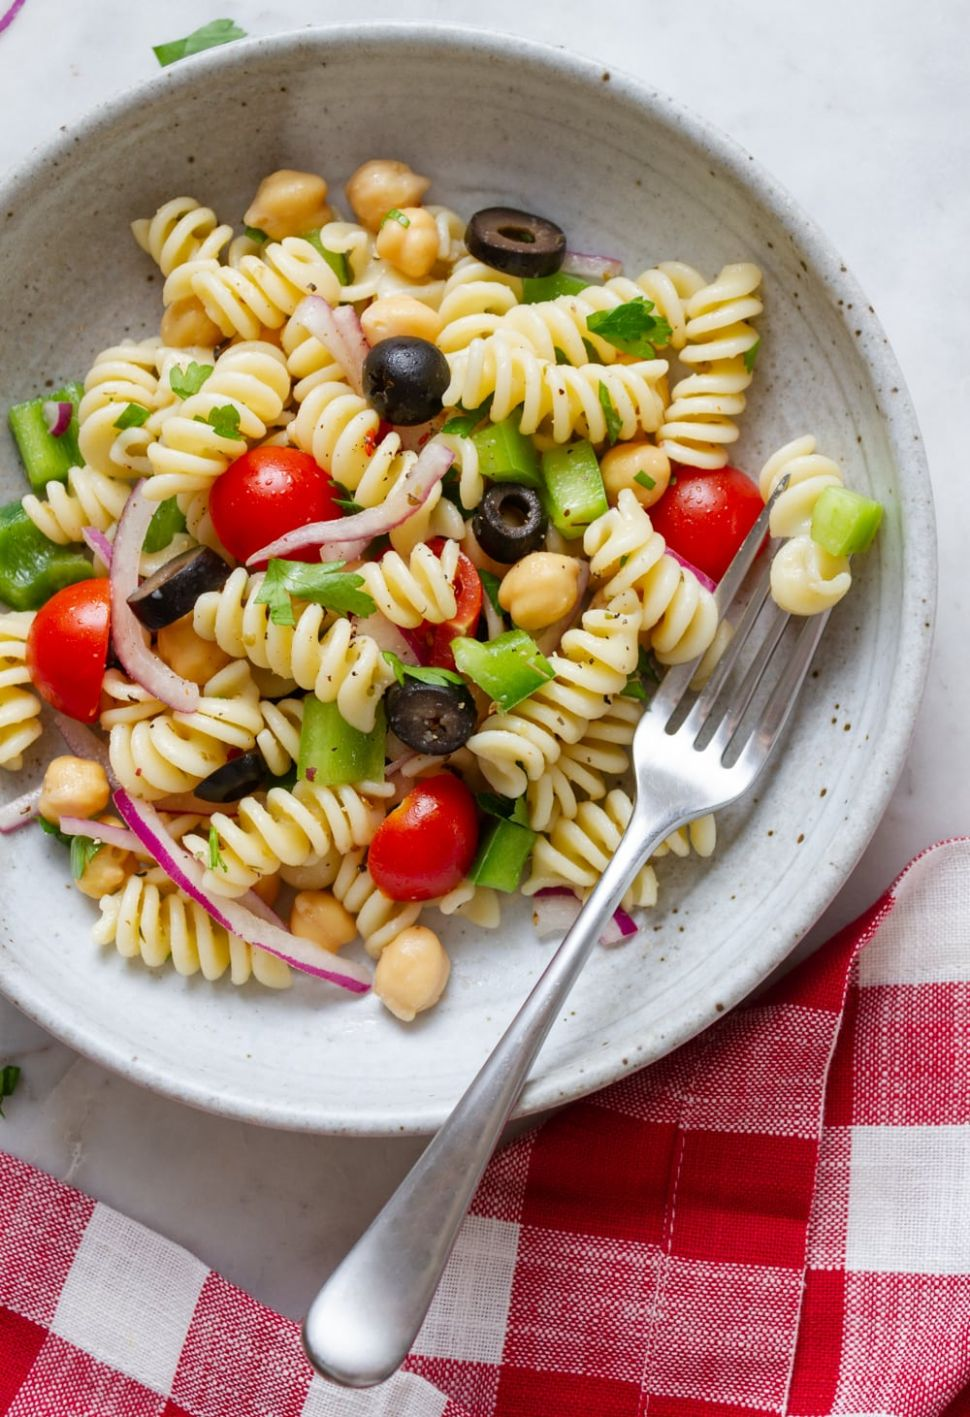 QUICK & EASY VEGAN PASTA SALAD - Salad Recipes Veg For Dinner